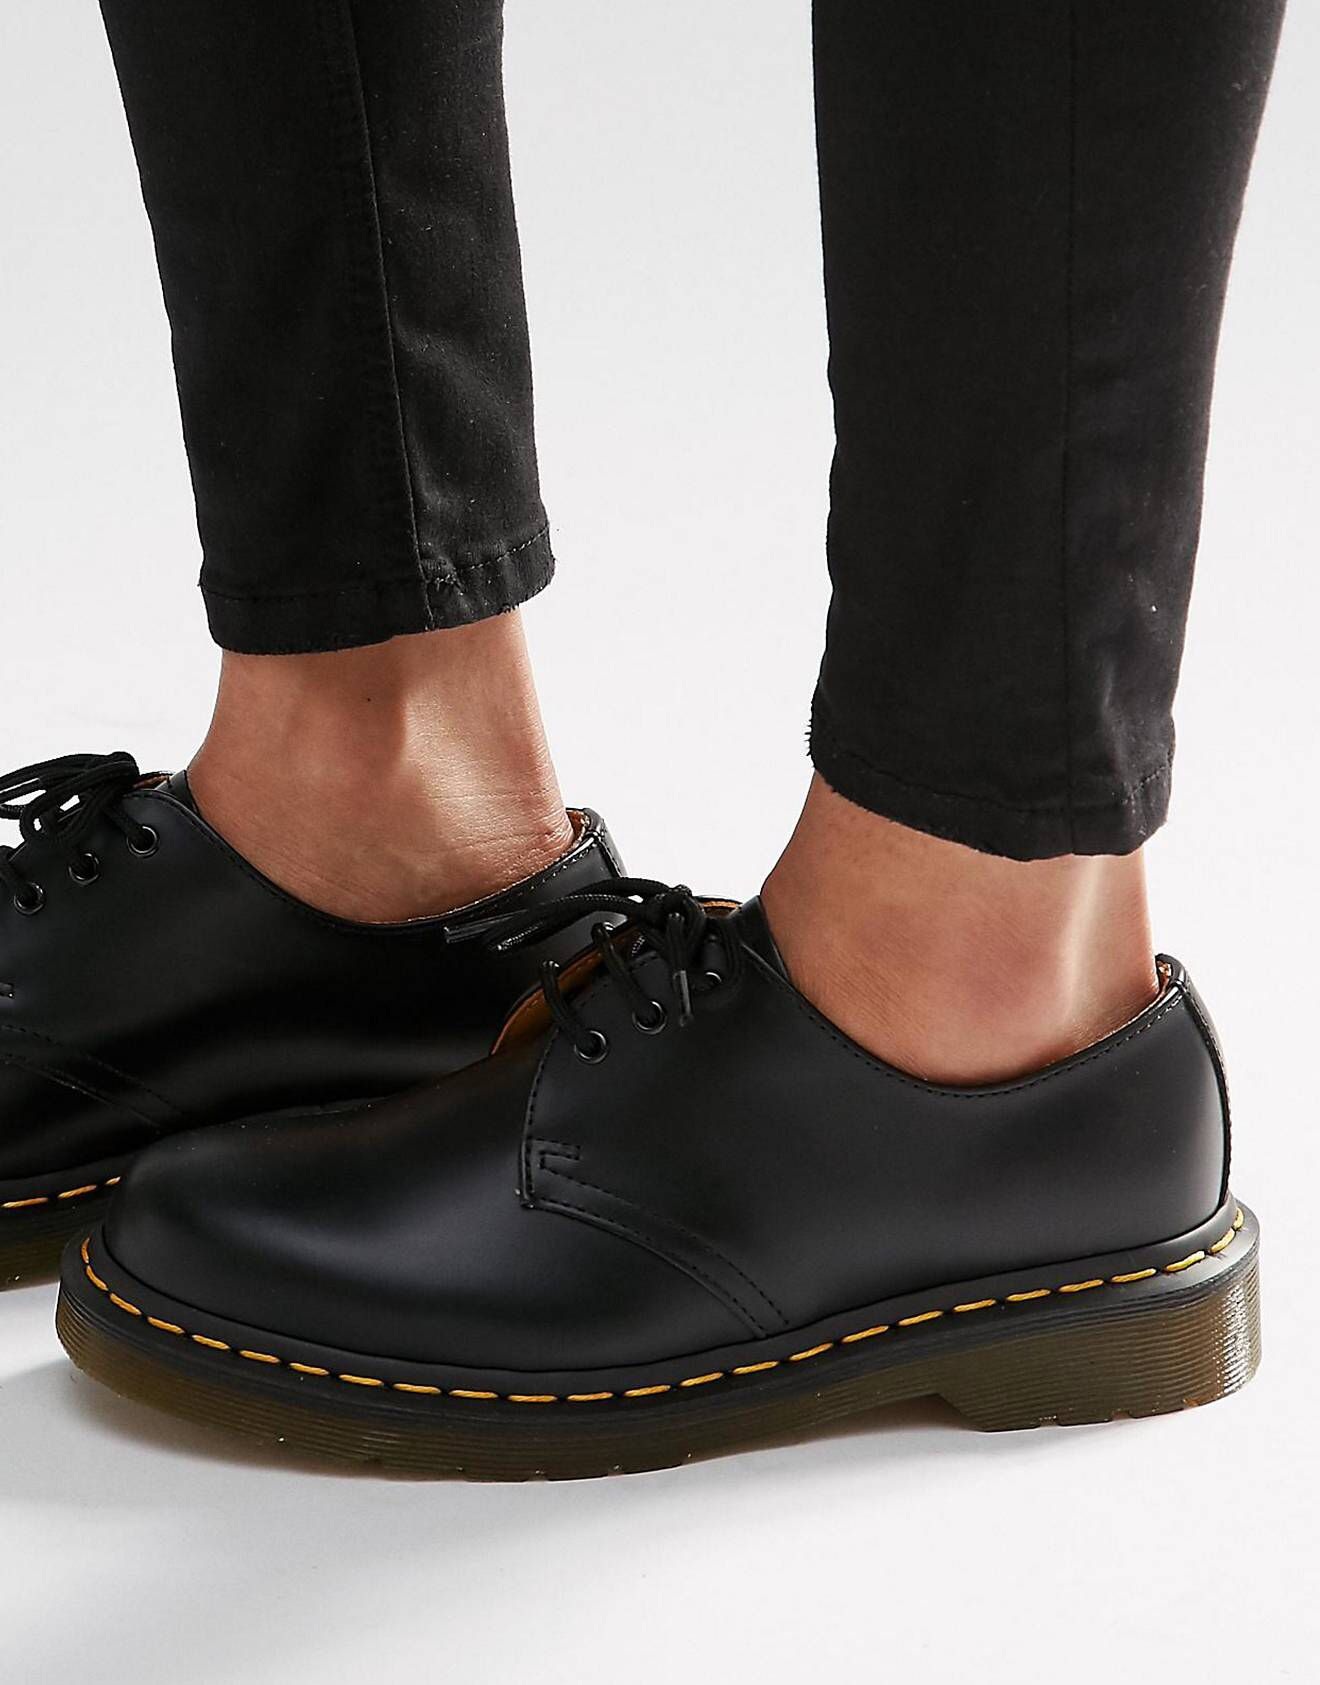 0384e570f344 Just when I thought I didn t need something new from ASOS